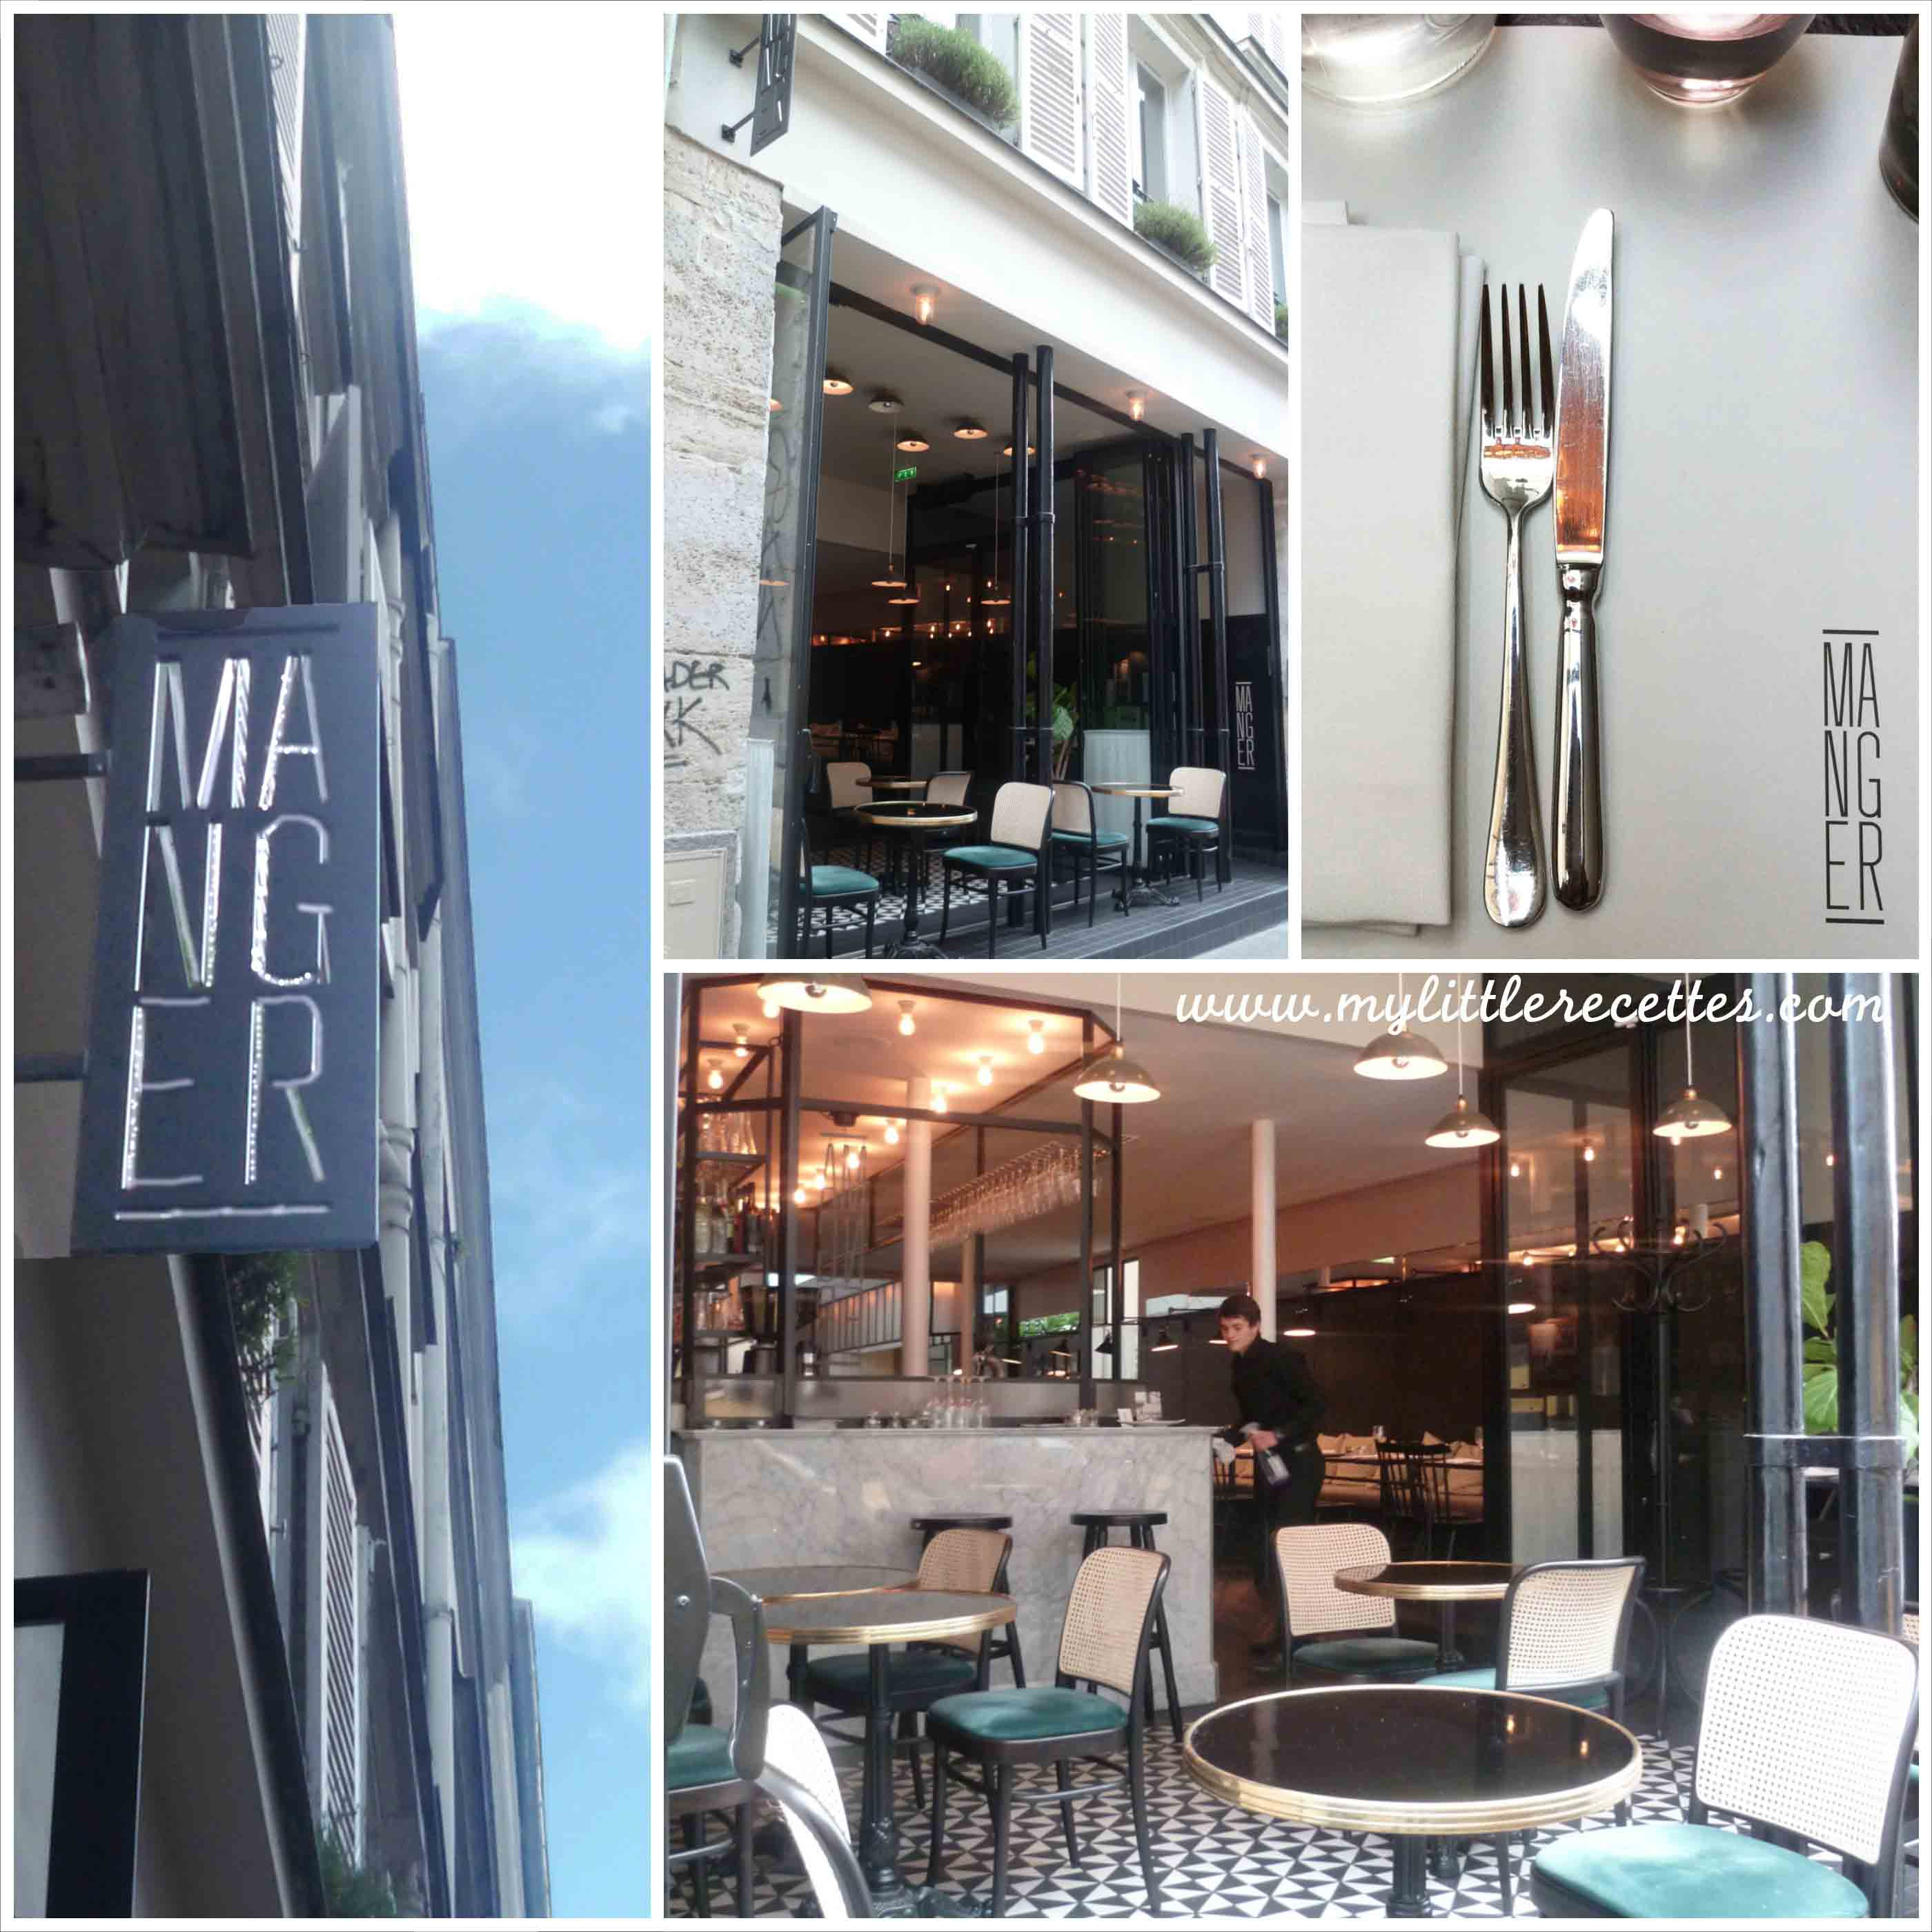 Testing restaurant, Manger, concept solidaire chic - 75011